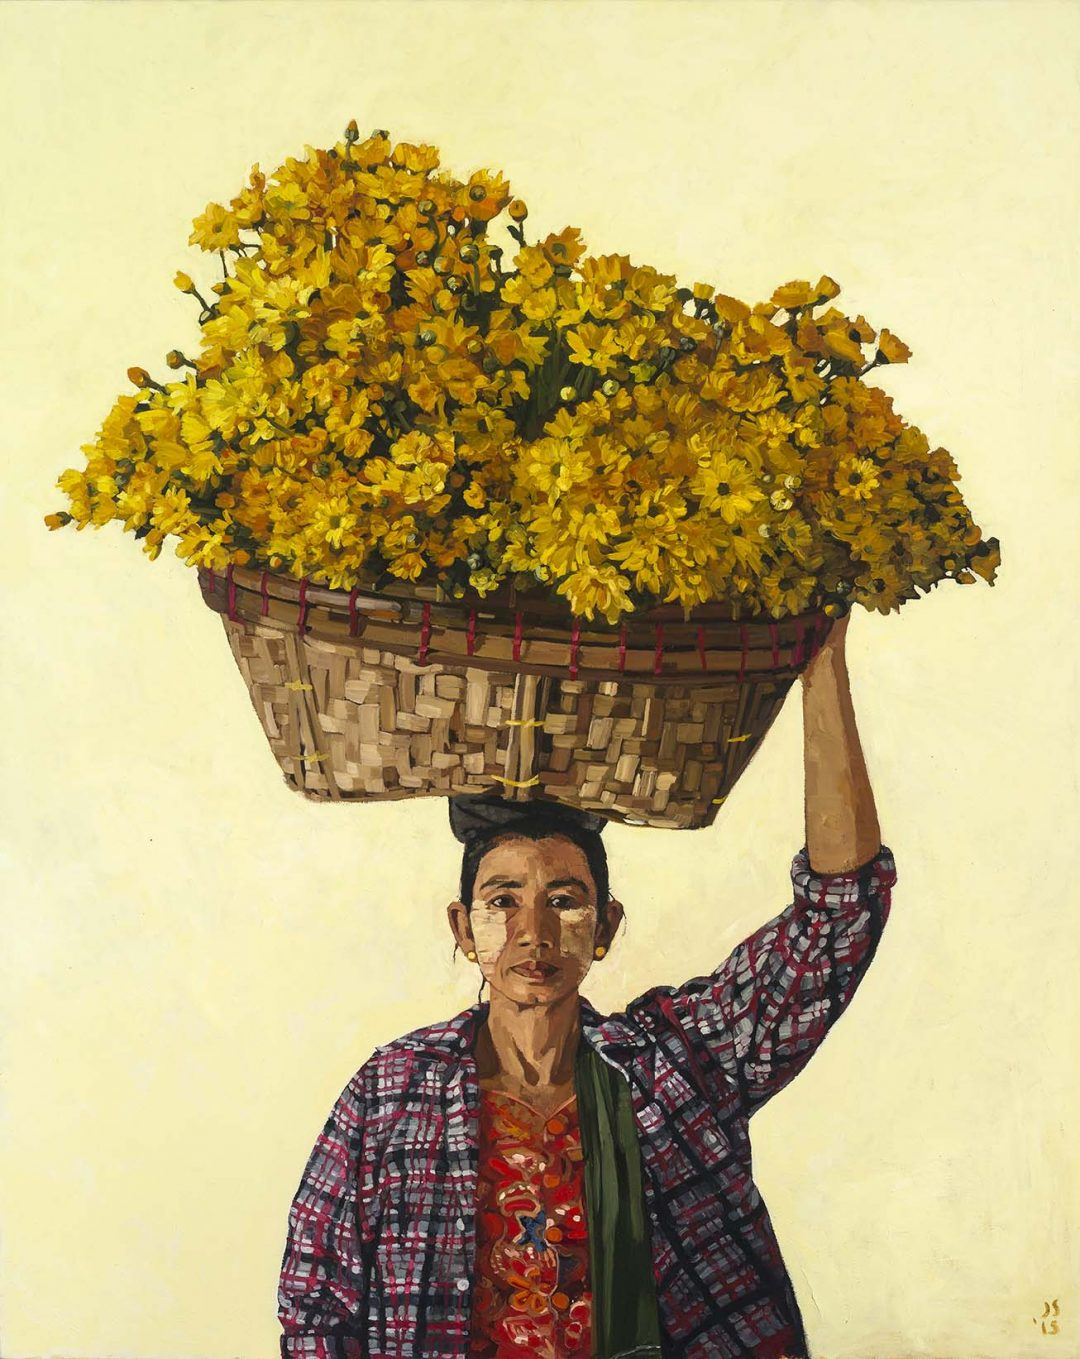 MIN MIN MON (WOMAN WITH FLOWERS ON HER HEAD)